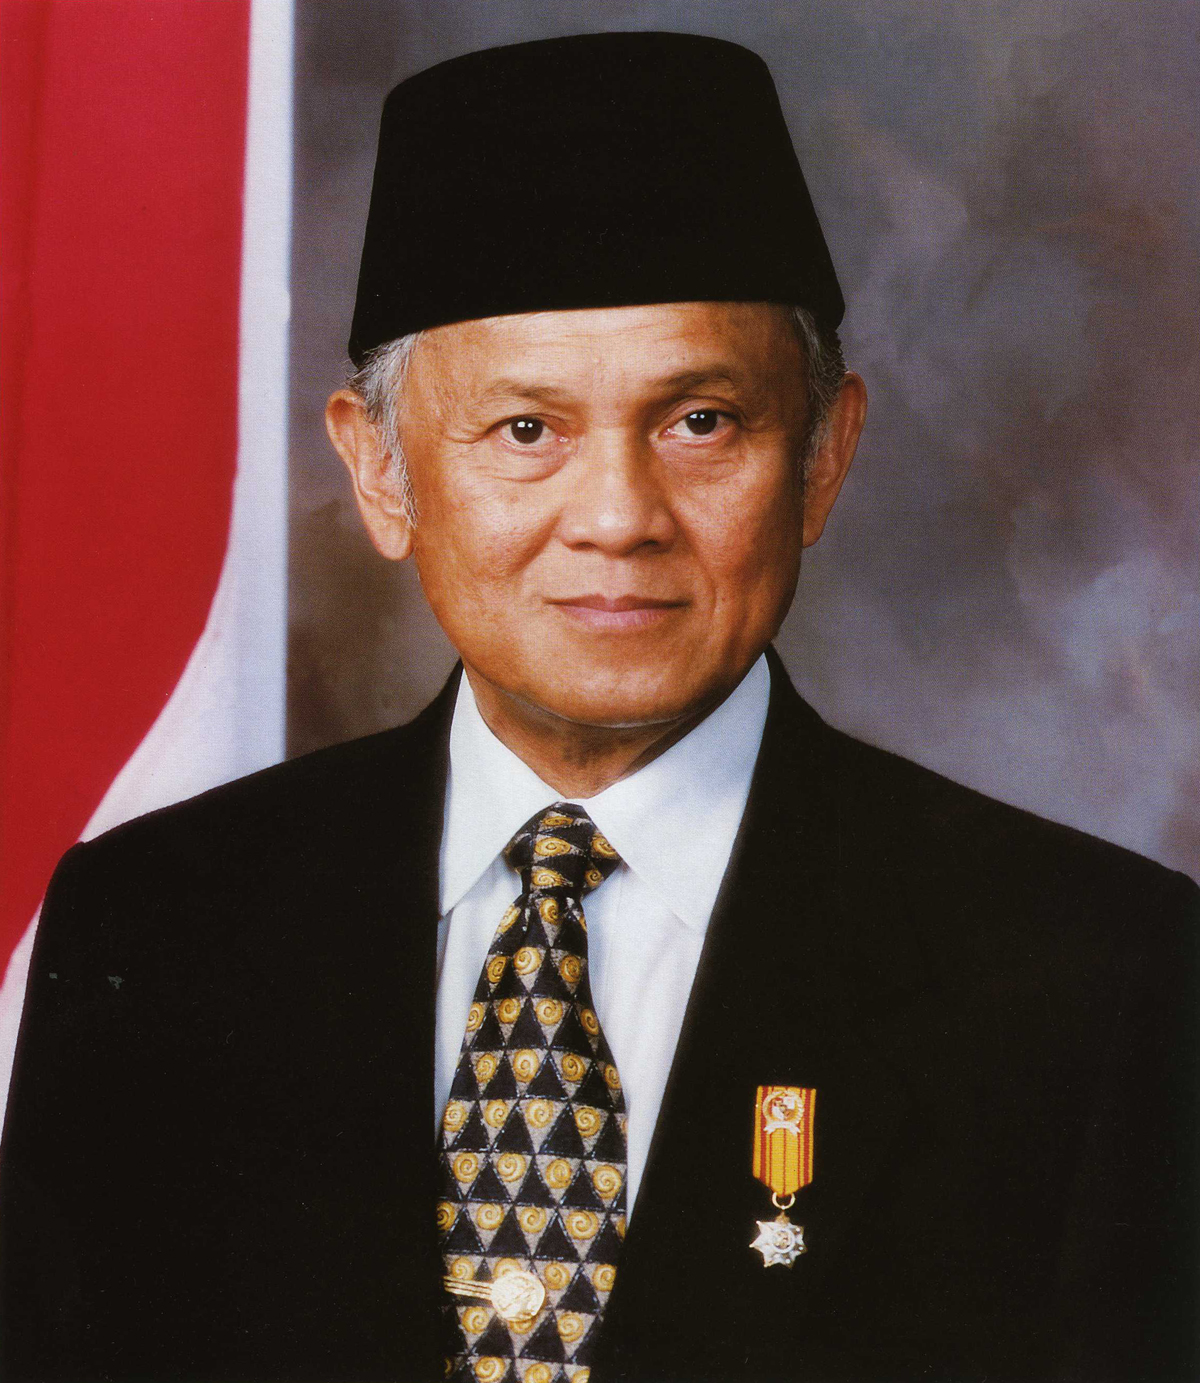 http://upload.wikimedia.org/wikipedia/commons/f/f1/Bacharuddin_Jusuf_Habibie_official_portrait.jpg